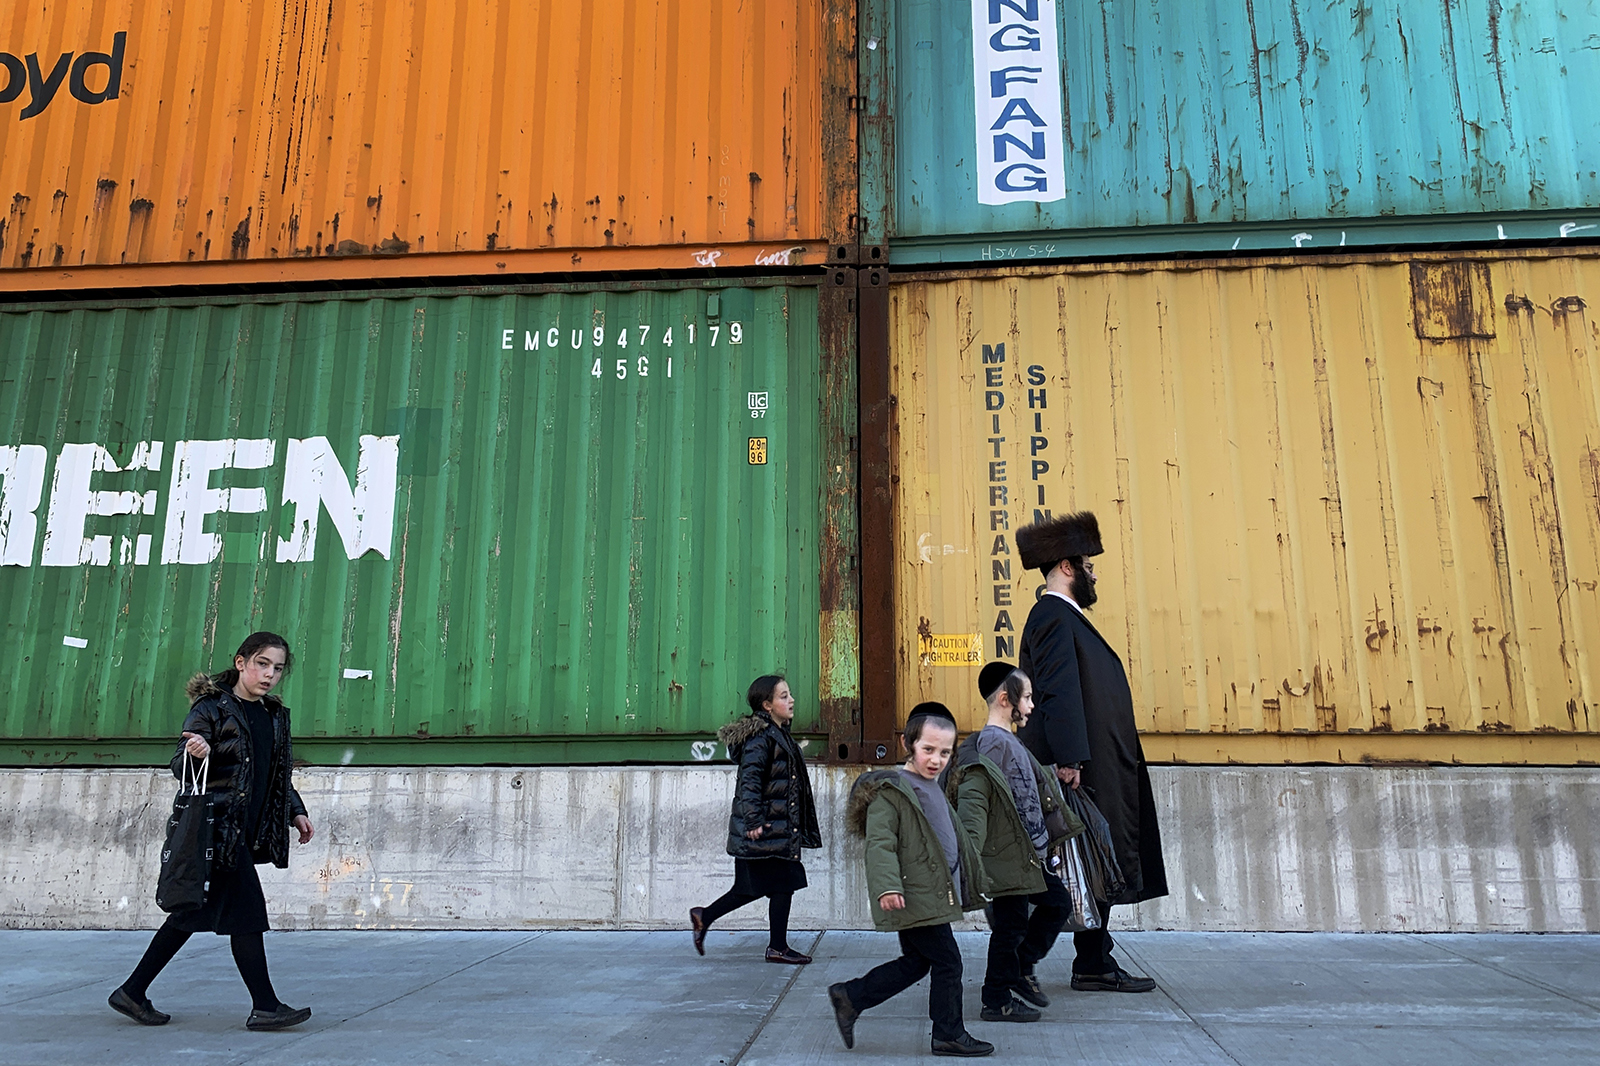 In this Tuesday, March 30, 2021, file photo, members of the Orthodox Jewish community walk past shipping containers in the South Williamsburg neighborhood of Brooklyn, New York. A comprehensive new survey of Jewish Americans finds them increasingly worried about antisemitism and sharply divided about the importance of religious observance in their lives. The wide-ranging survey, released on Tuesday, May 11, 2021, was conducted by the Pew Research Center. (AP Photo/Wong Maye-E)